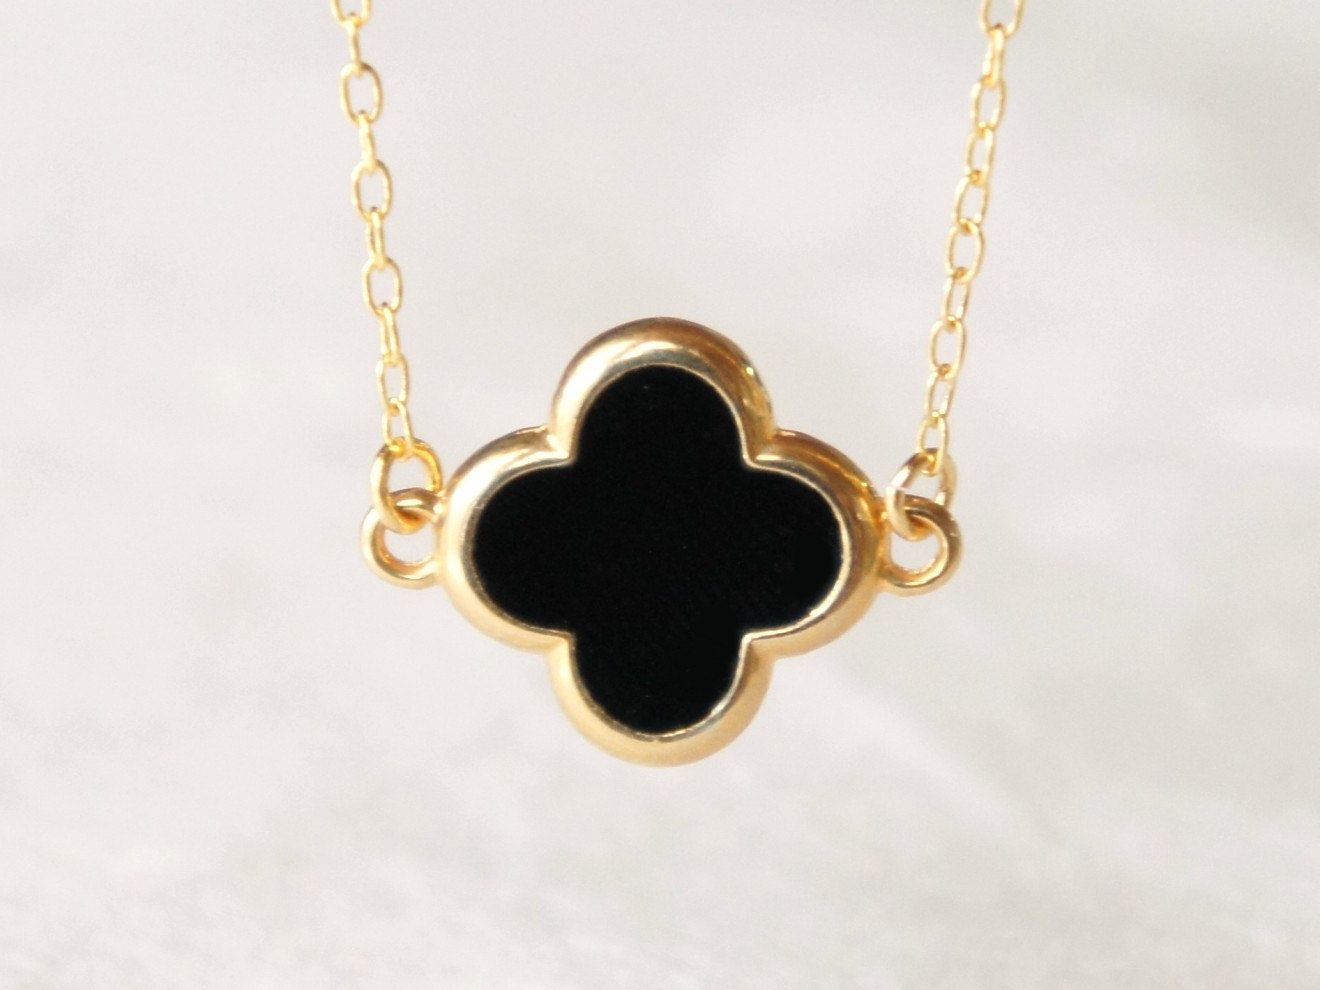 Black Four Leaf Clover Necklace Delicate 14k Gold Filled Chain Modern Minimalist Jewelry For Every Clover Necklace Four Leaf Clover Necklace Four Leaf Clover